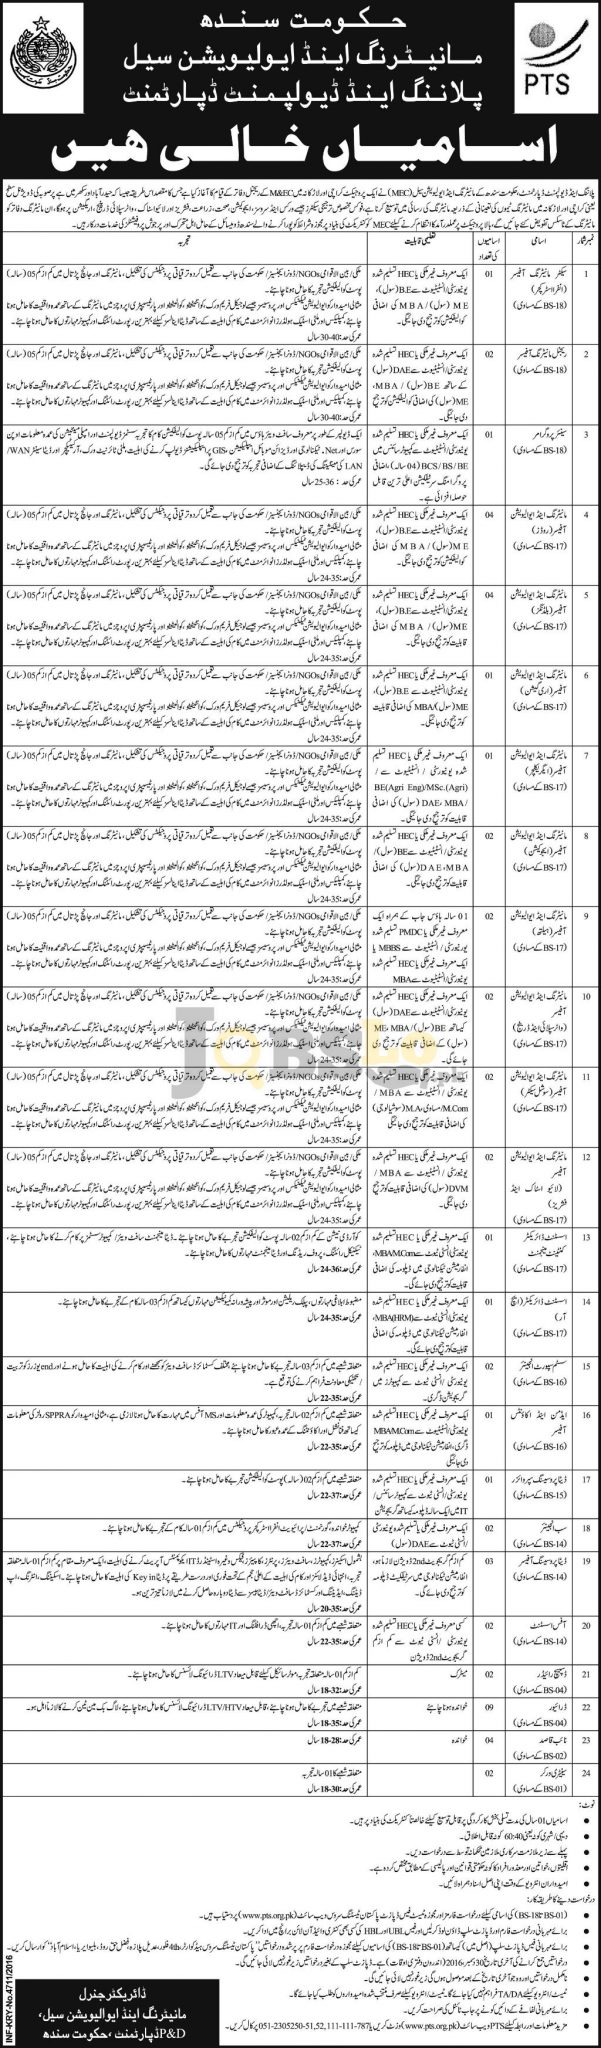 Monitoring & Evaluation Cell Sindh Jobs 2016 PTS Online Form Download